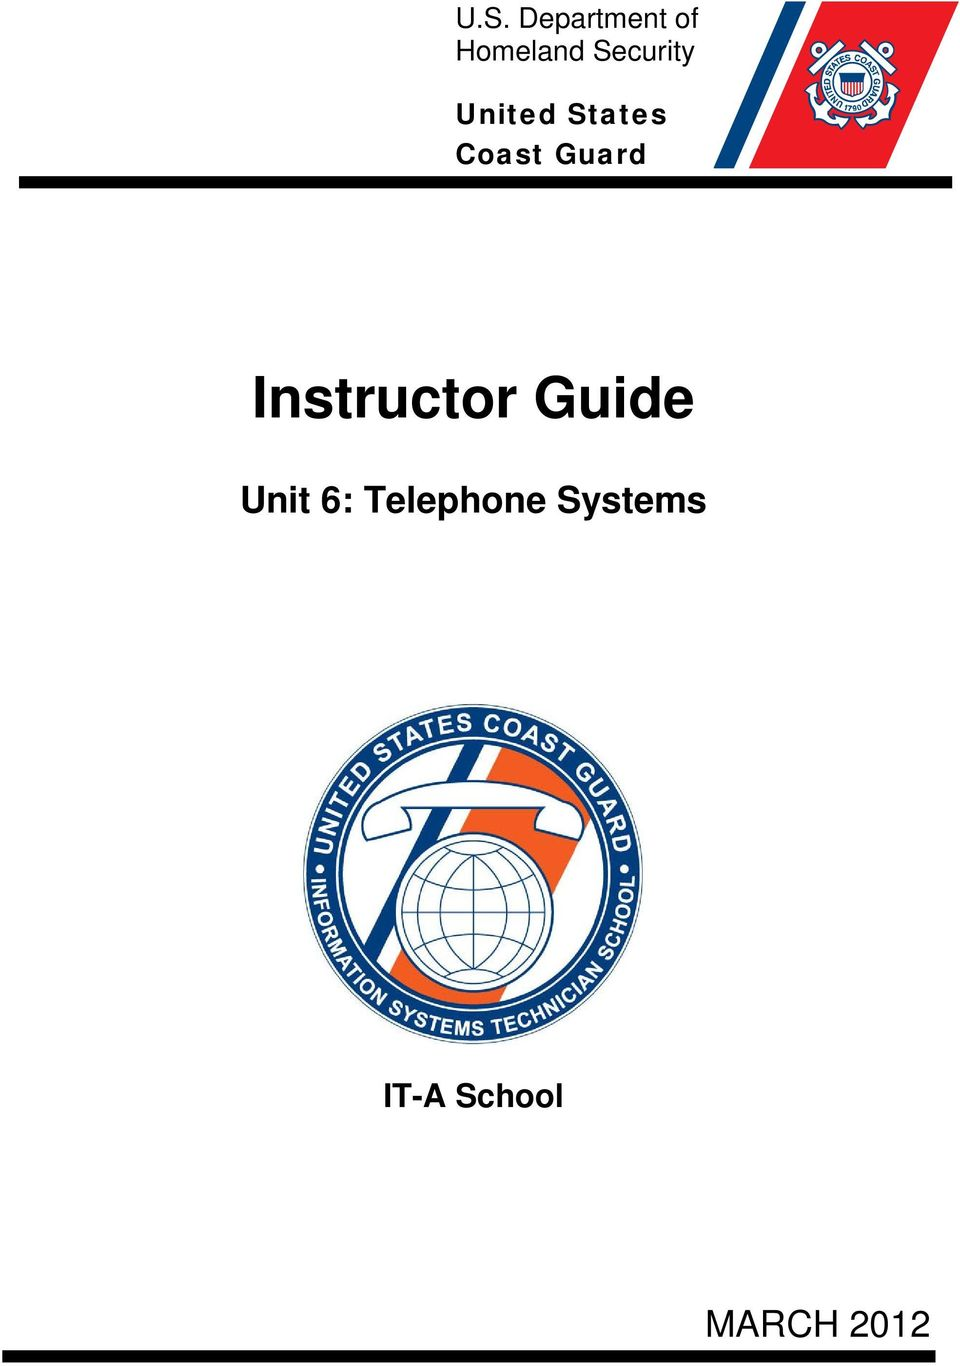 Guard Instructor Guide Unit 6: